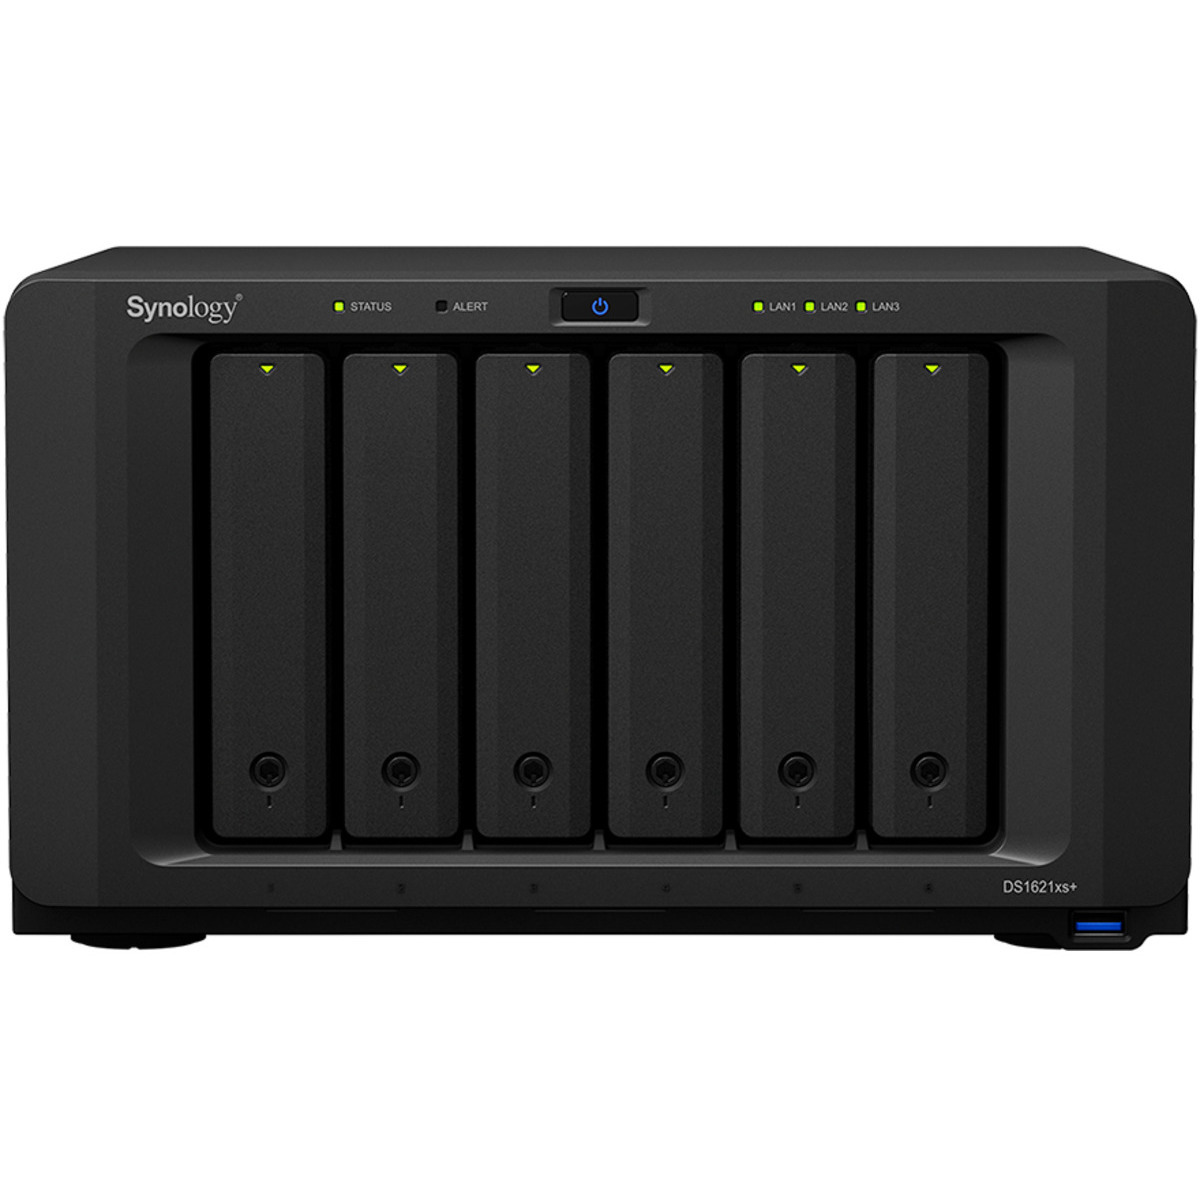 buy $2244 Synology DiskStation DS1621xs+ 1.5tb Desktop NAS - Network Attached Storage Device 6x250gb Western Digital Blue WDS250G2B0A 2.5 SATA 6Gb/s SSD CONSUMER Class Drives Installed - Burn-In Tested - nas headquarters buy network attached storage server device das new raid-5 free shipping usa holiday new year clearance sale DiskStation DS1621xs+